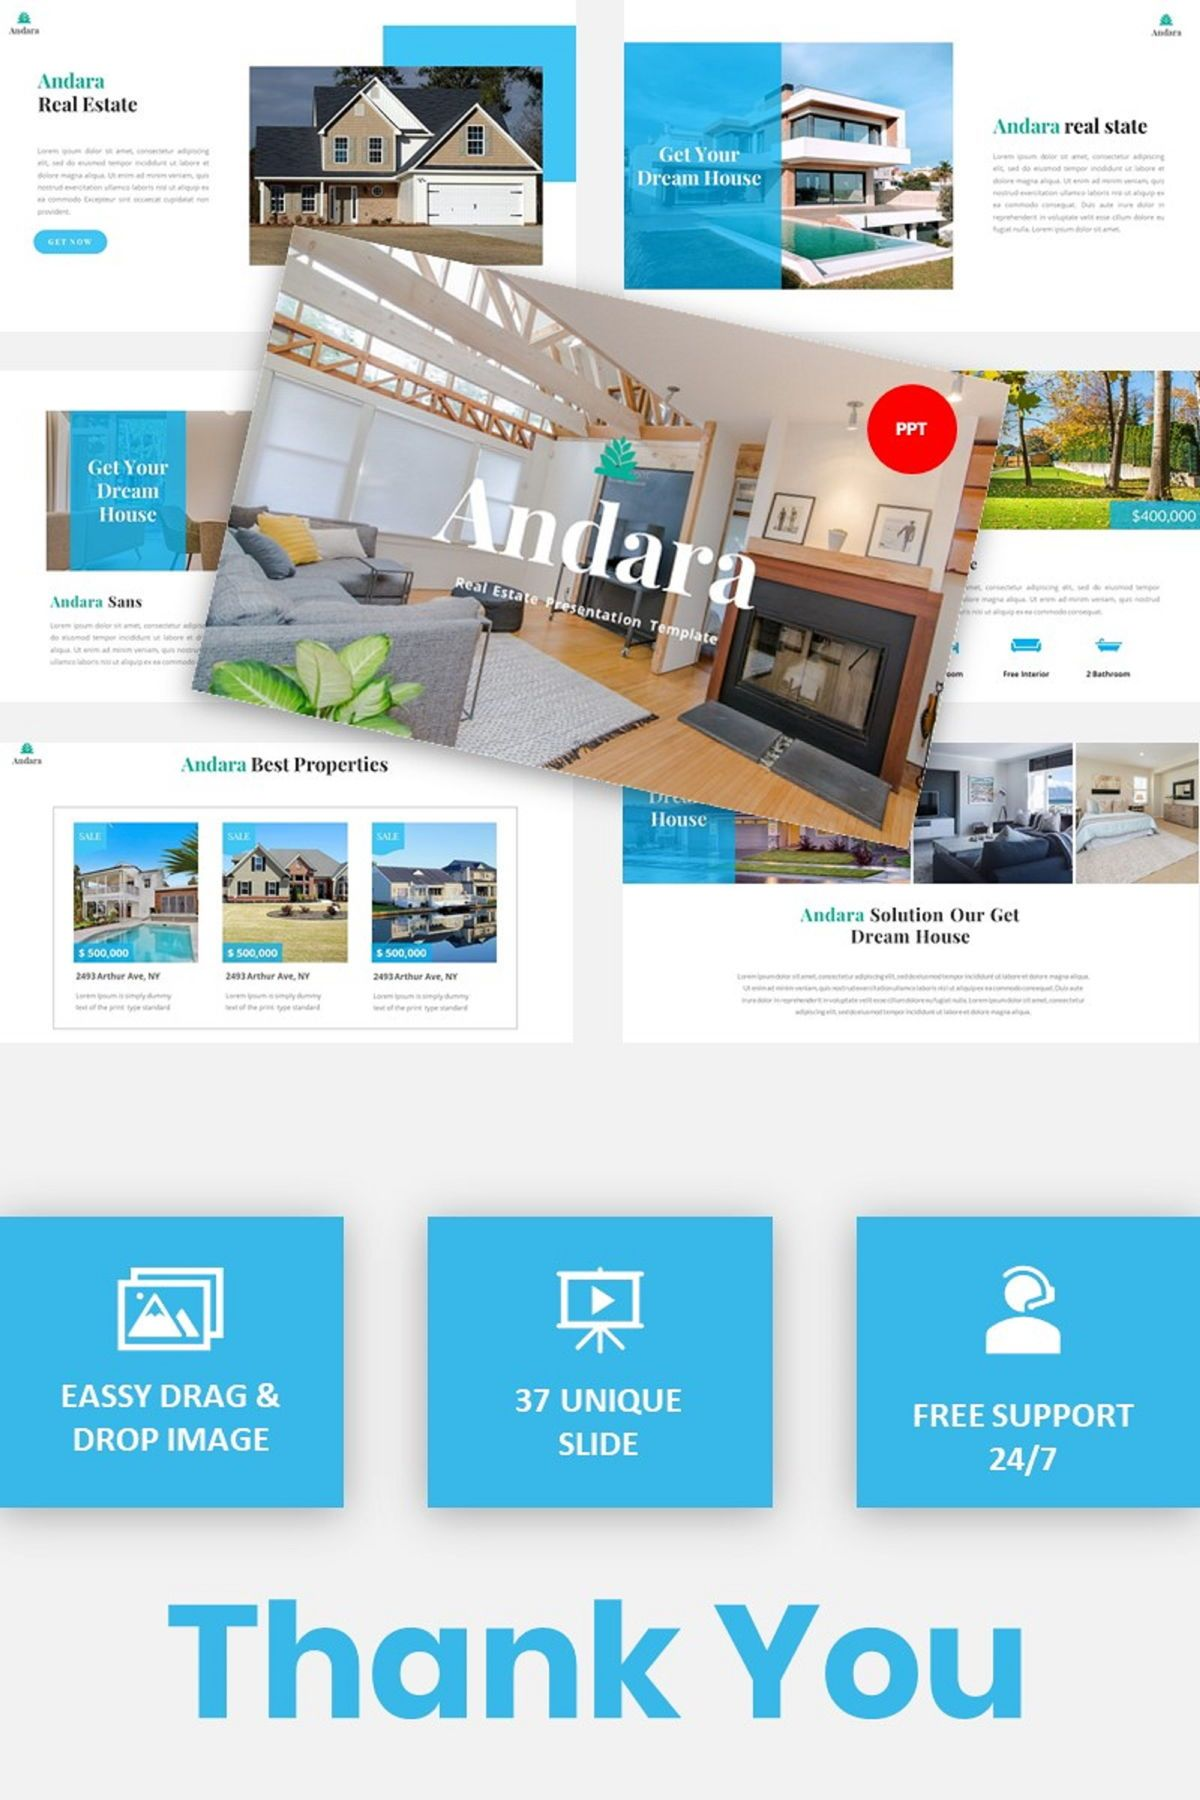 Andara - Real Estate Powerpoint Template, 05888, Text Boxes — PoweredTemplate.com